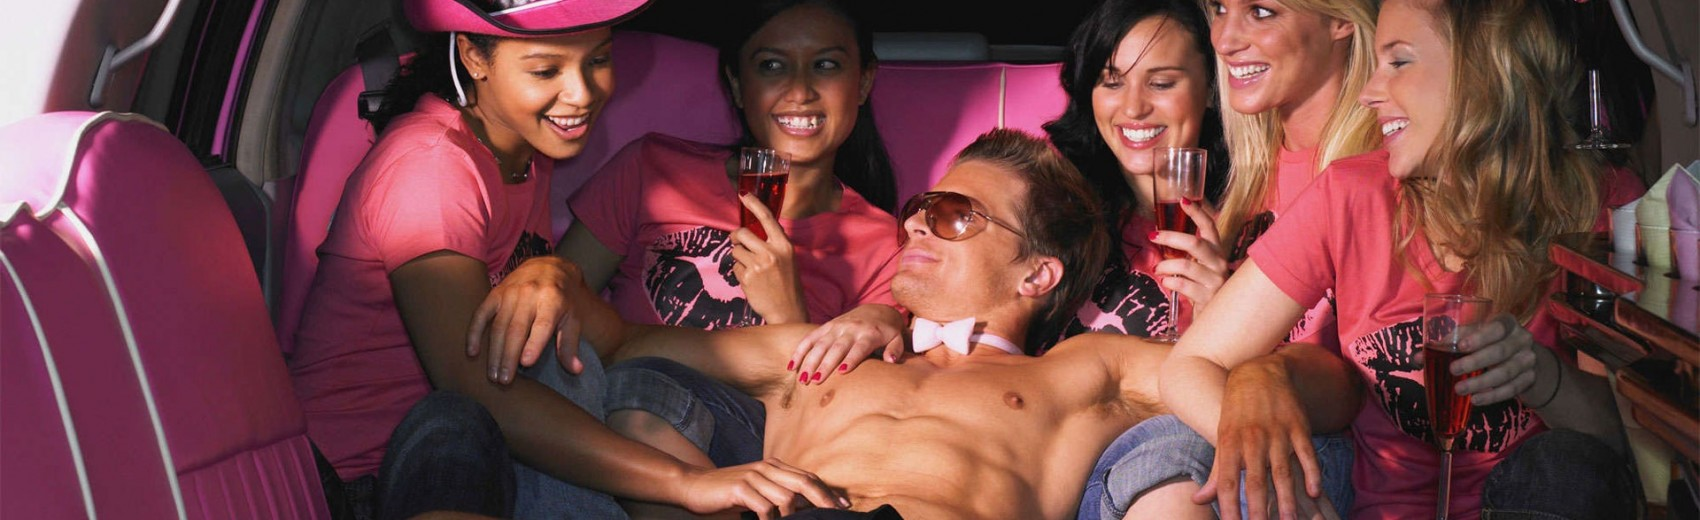 Tips to hiring male and female strippers